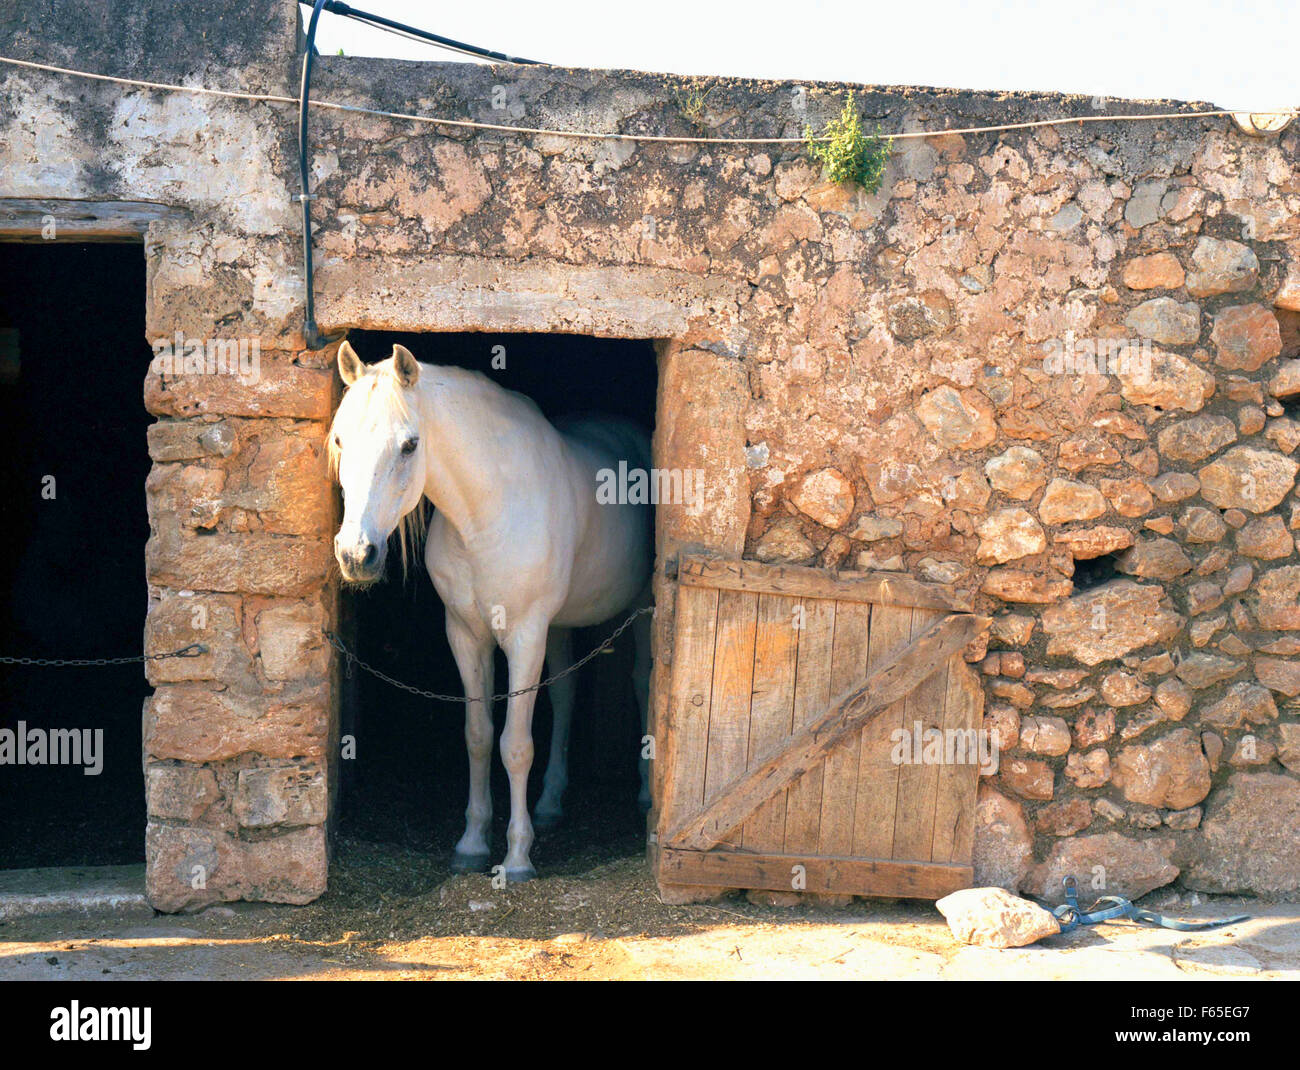 White Horse In Stable Made Of Stone Walls On Ibiza Island Spain Stock Photo Alamy